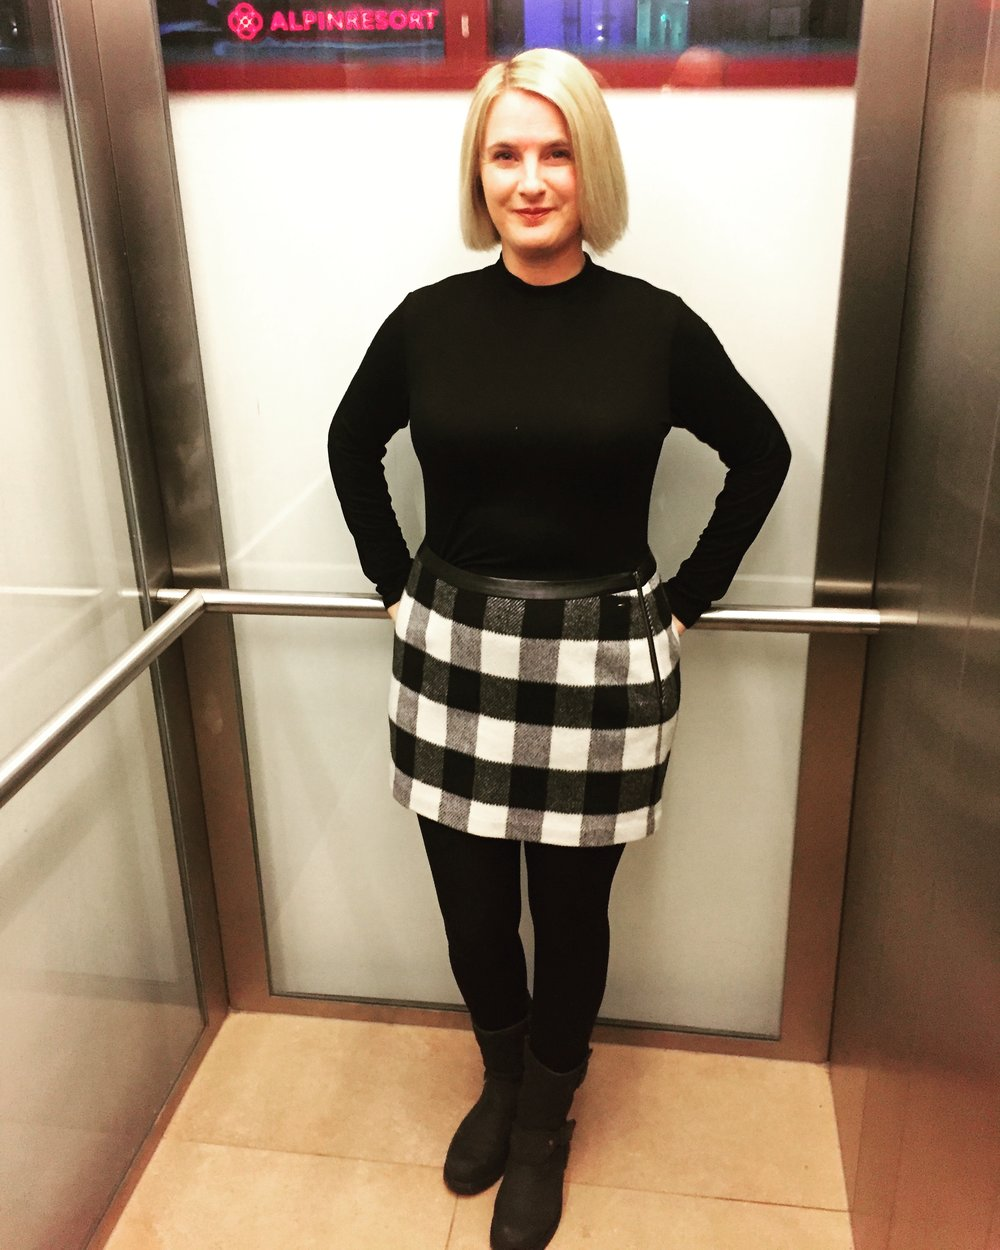 Top from Marks and Spencer, Skirt from Tommy Hilfiger, thick tights with a hole cut in from Tesco, Boots from Barbour.